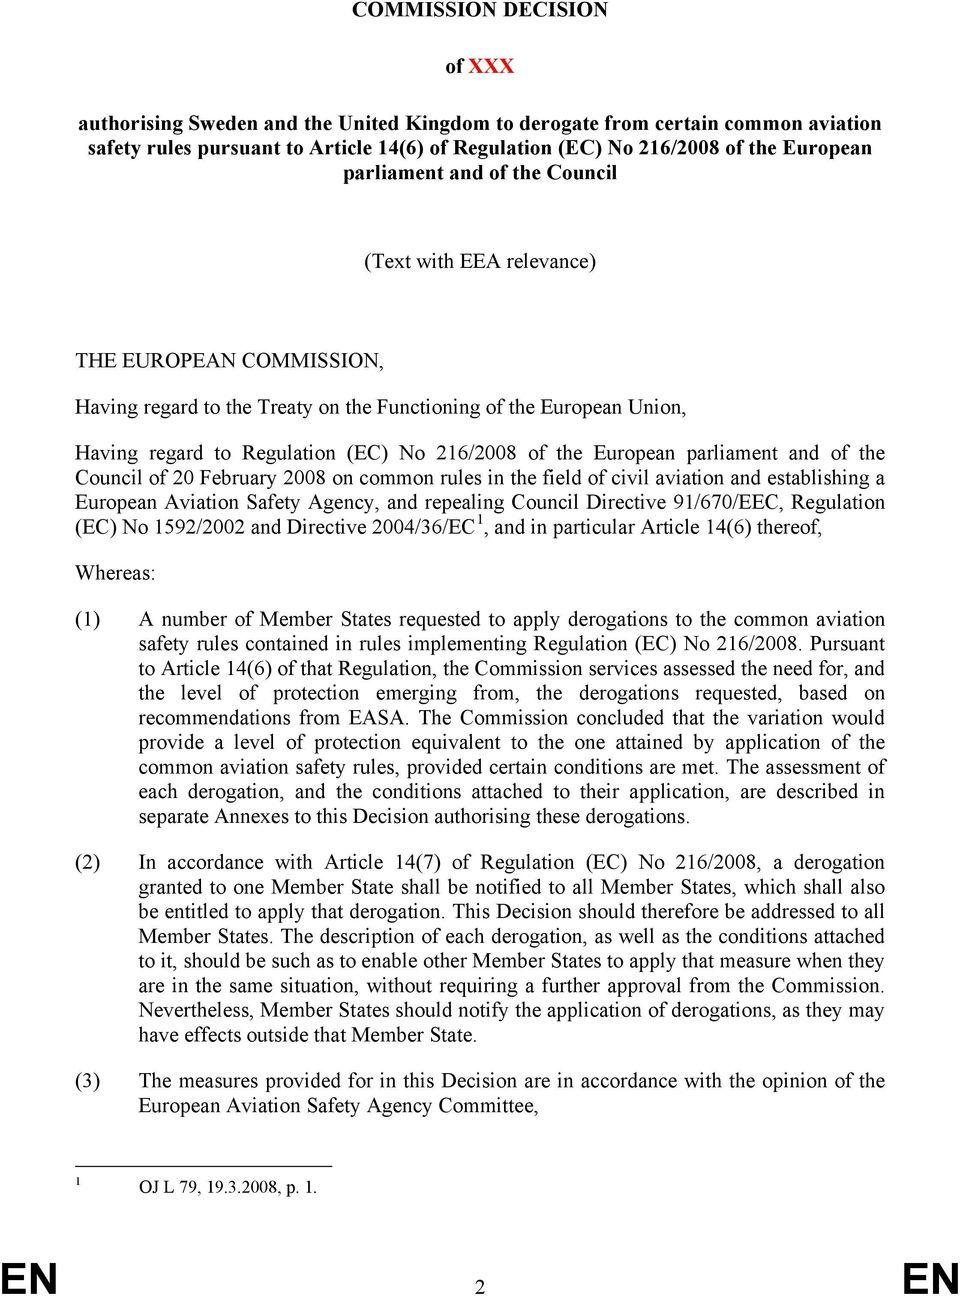 the European parliament and of the Council of 20 February 2008 on common rules in the field of civil aviation and establishing a European Aviation Safety Agency, and repealing Council Directive